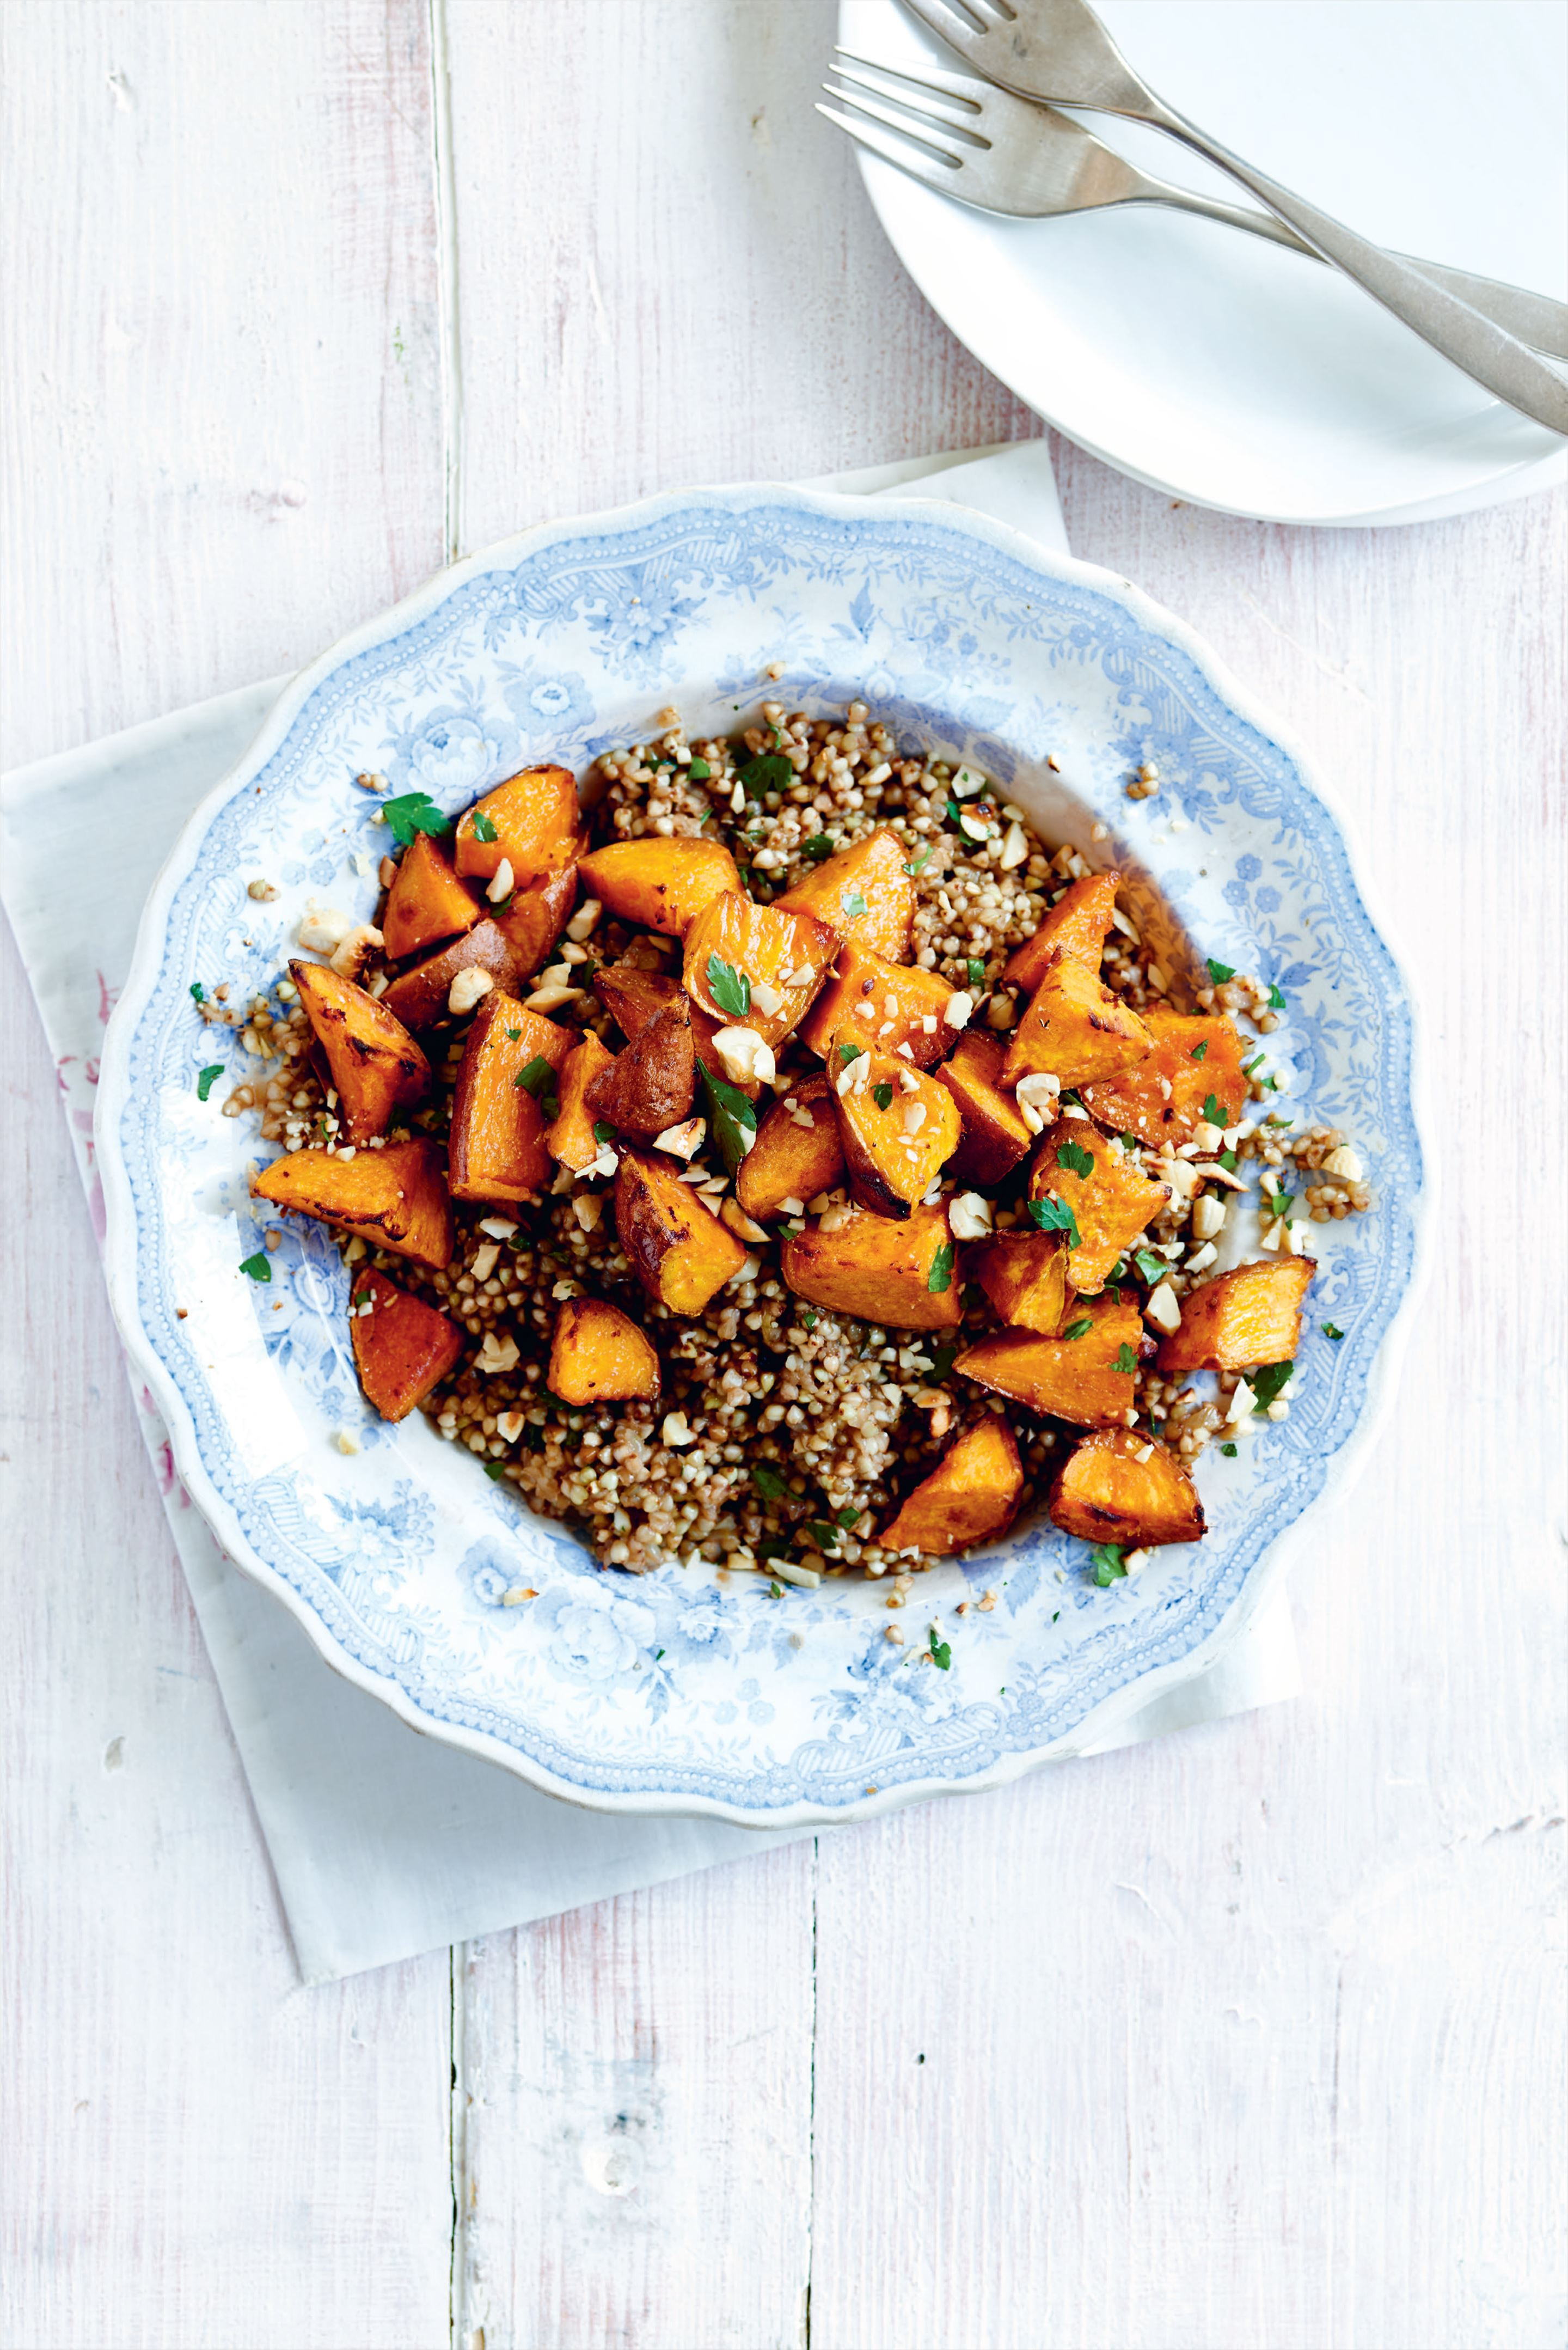 Buckwheat risotto with tamarind sweet potato